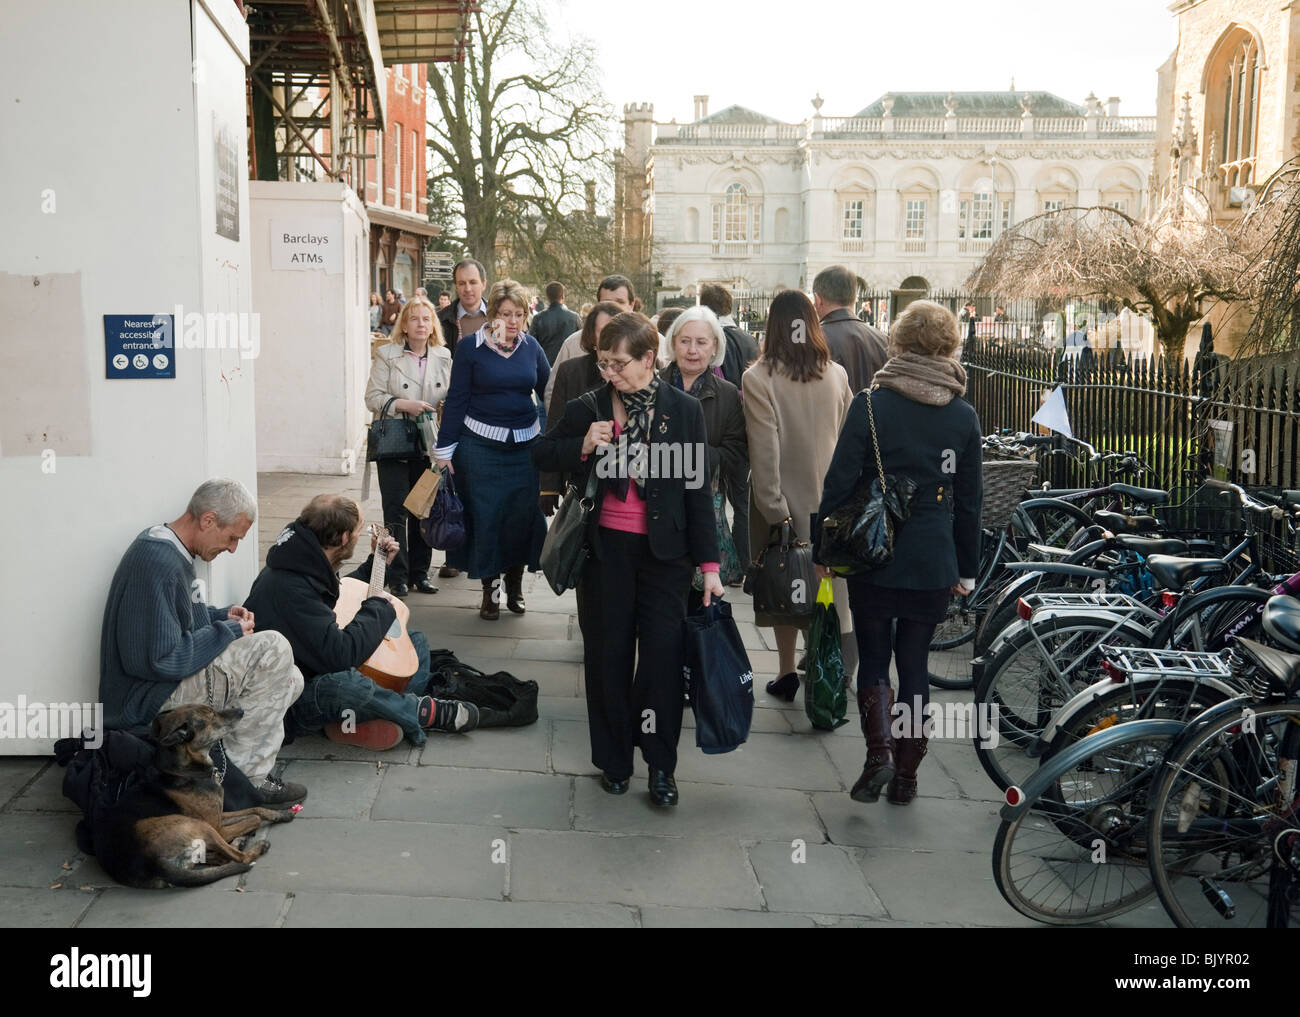 Buskers in the centre of Cambridge, UK - Stock Image